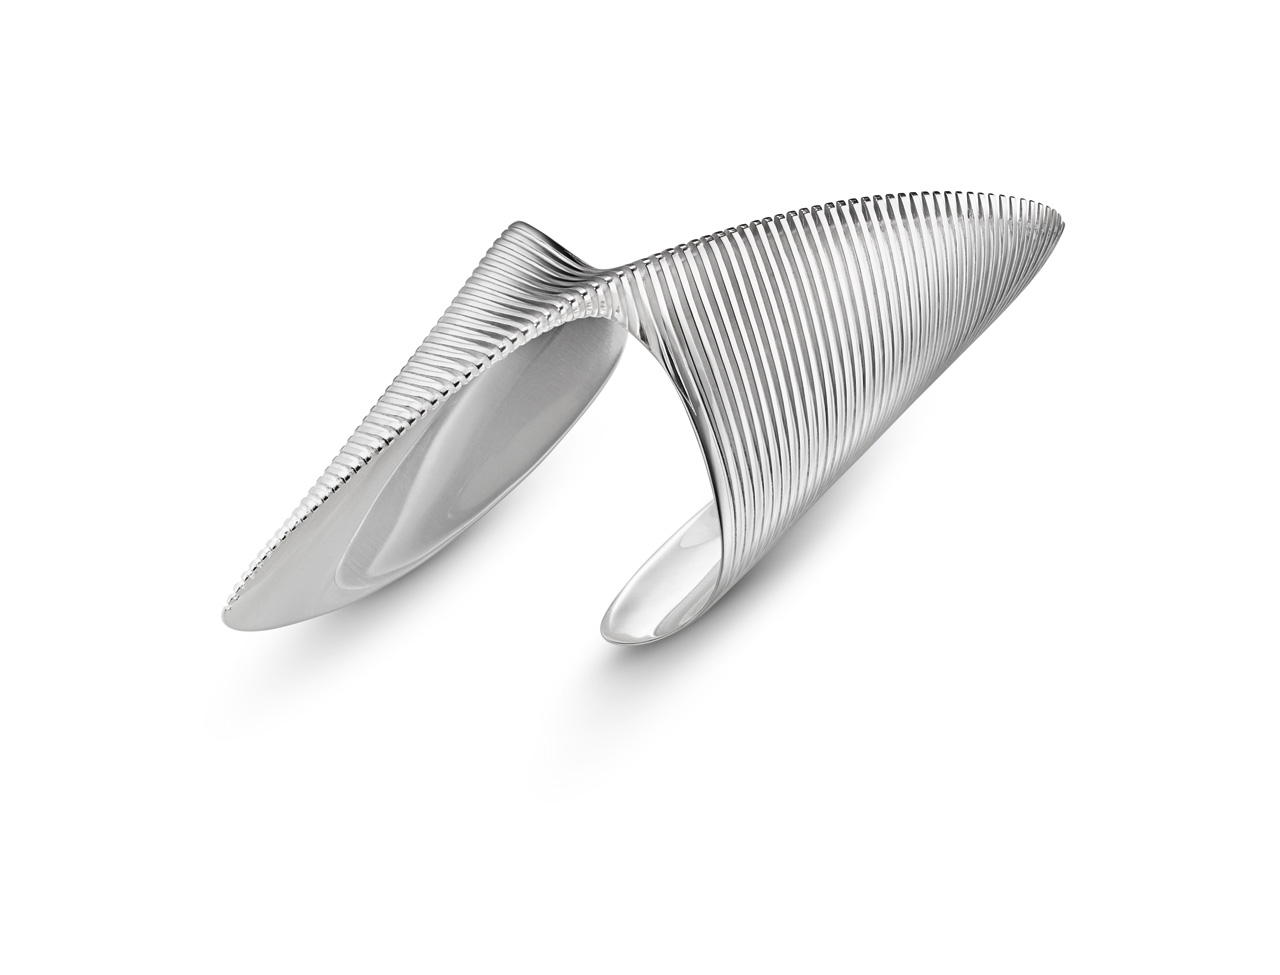 The Zaha Hadid Collection for Georg Jensen